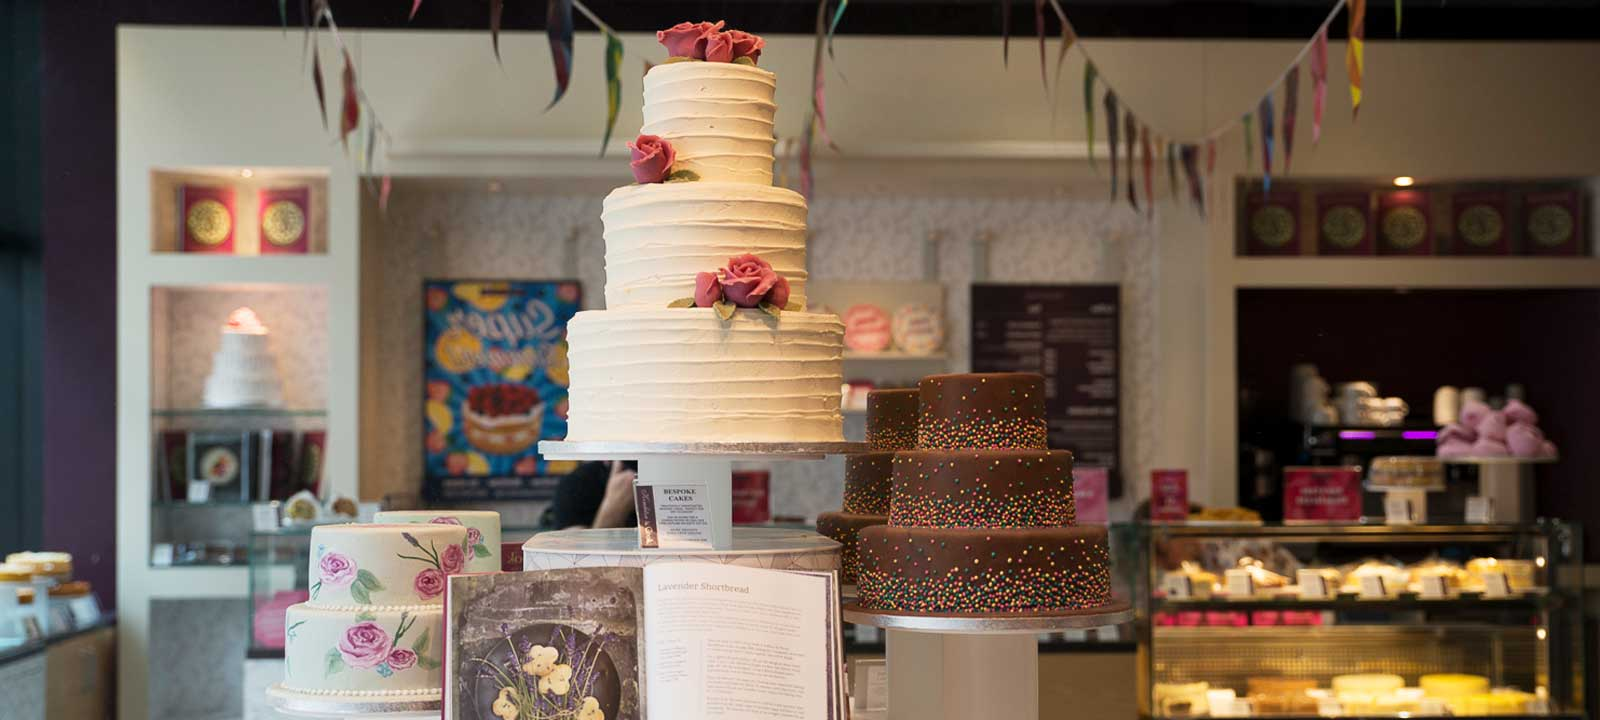 Showstopper Cake in our Spitalfields store.